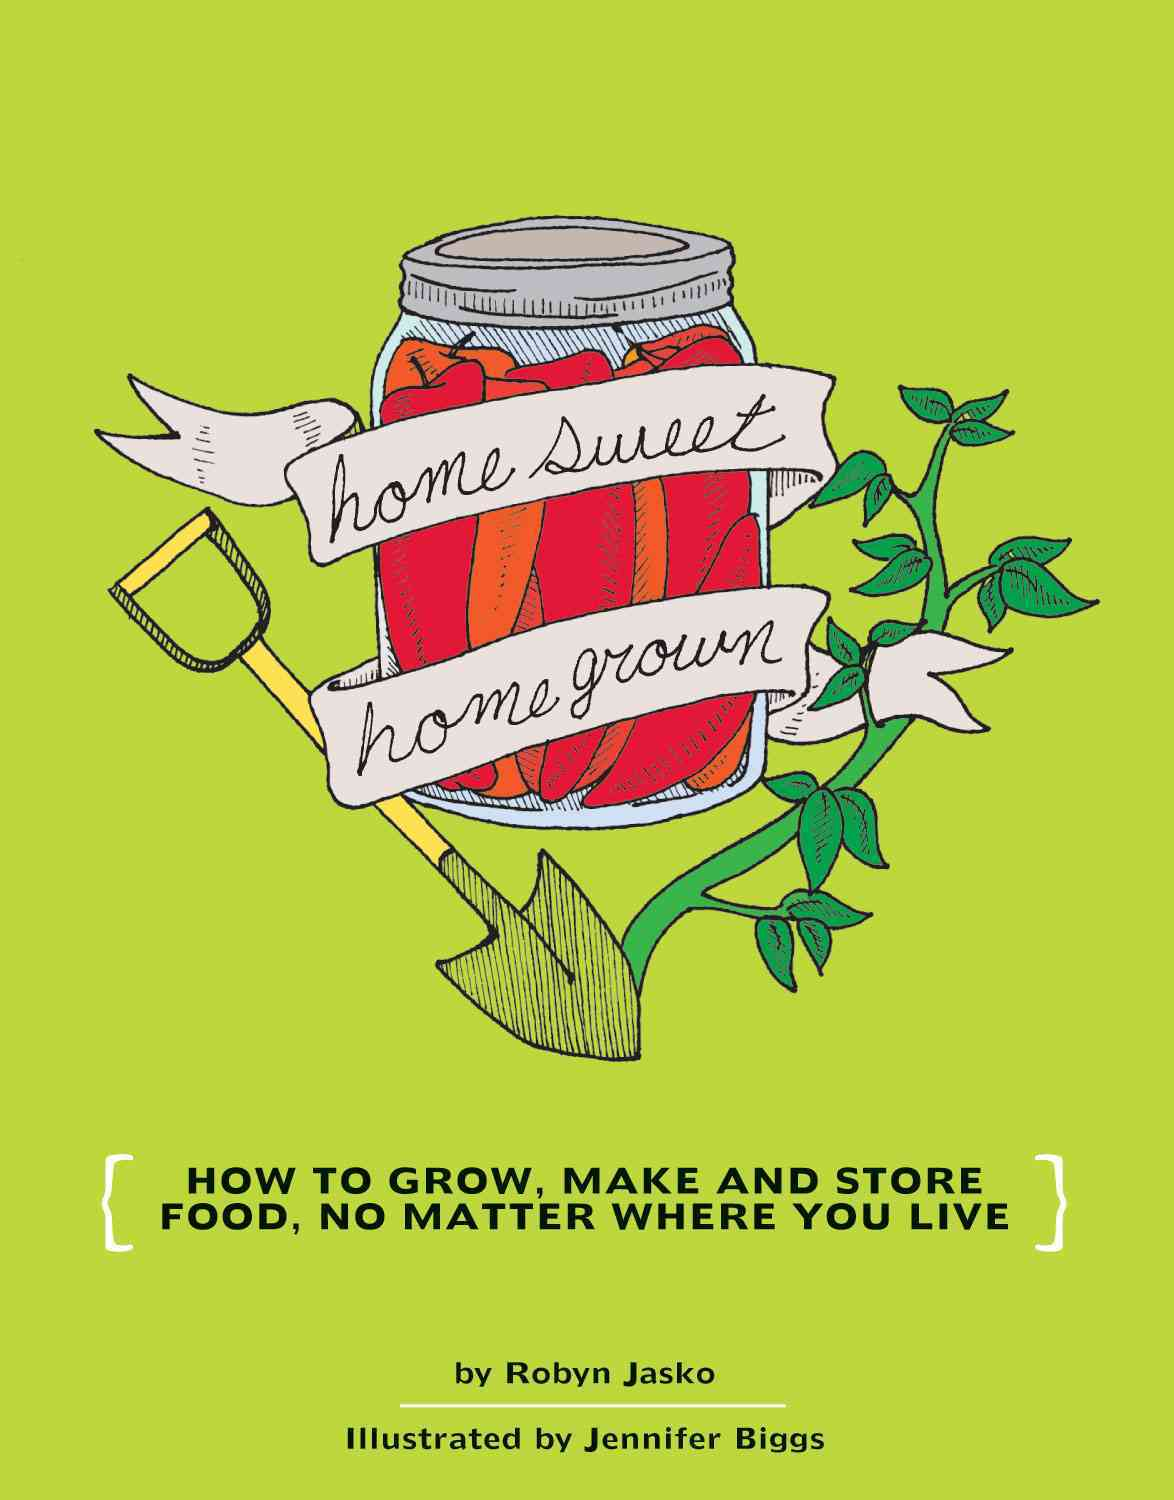 Homesweet Homegrown: How to Grow, Make and Store Food Your Own Food, No Matter Where You Live (Paperback)